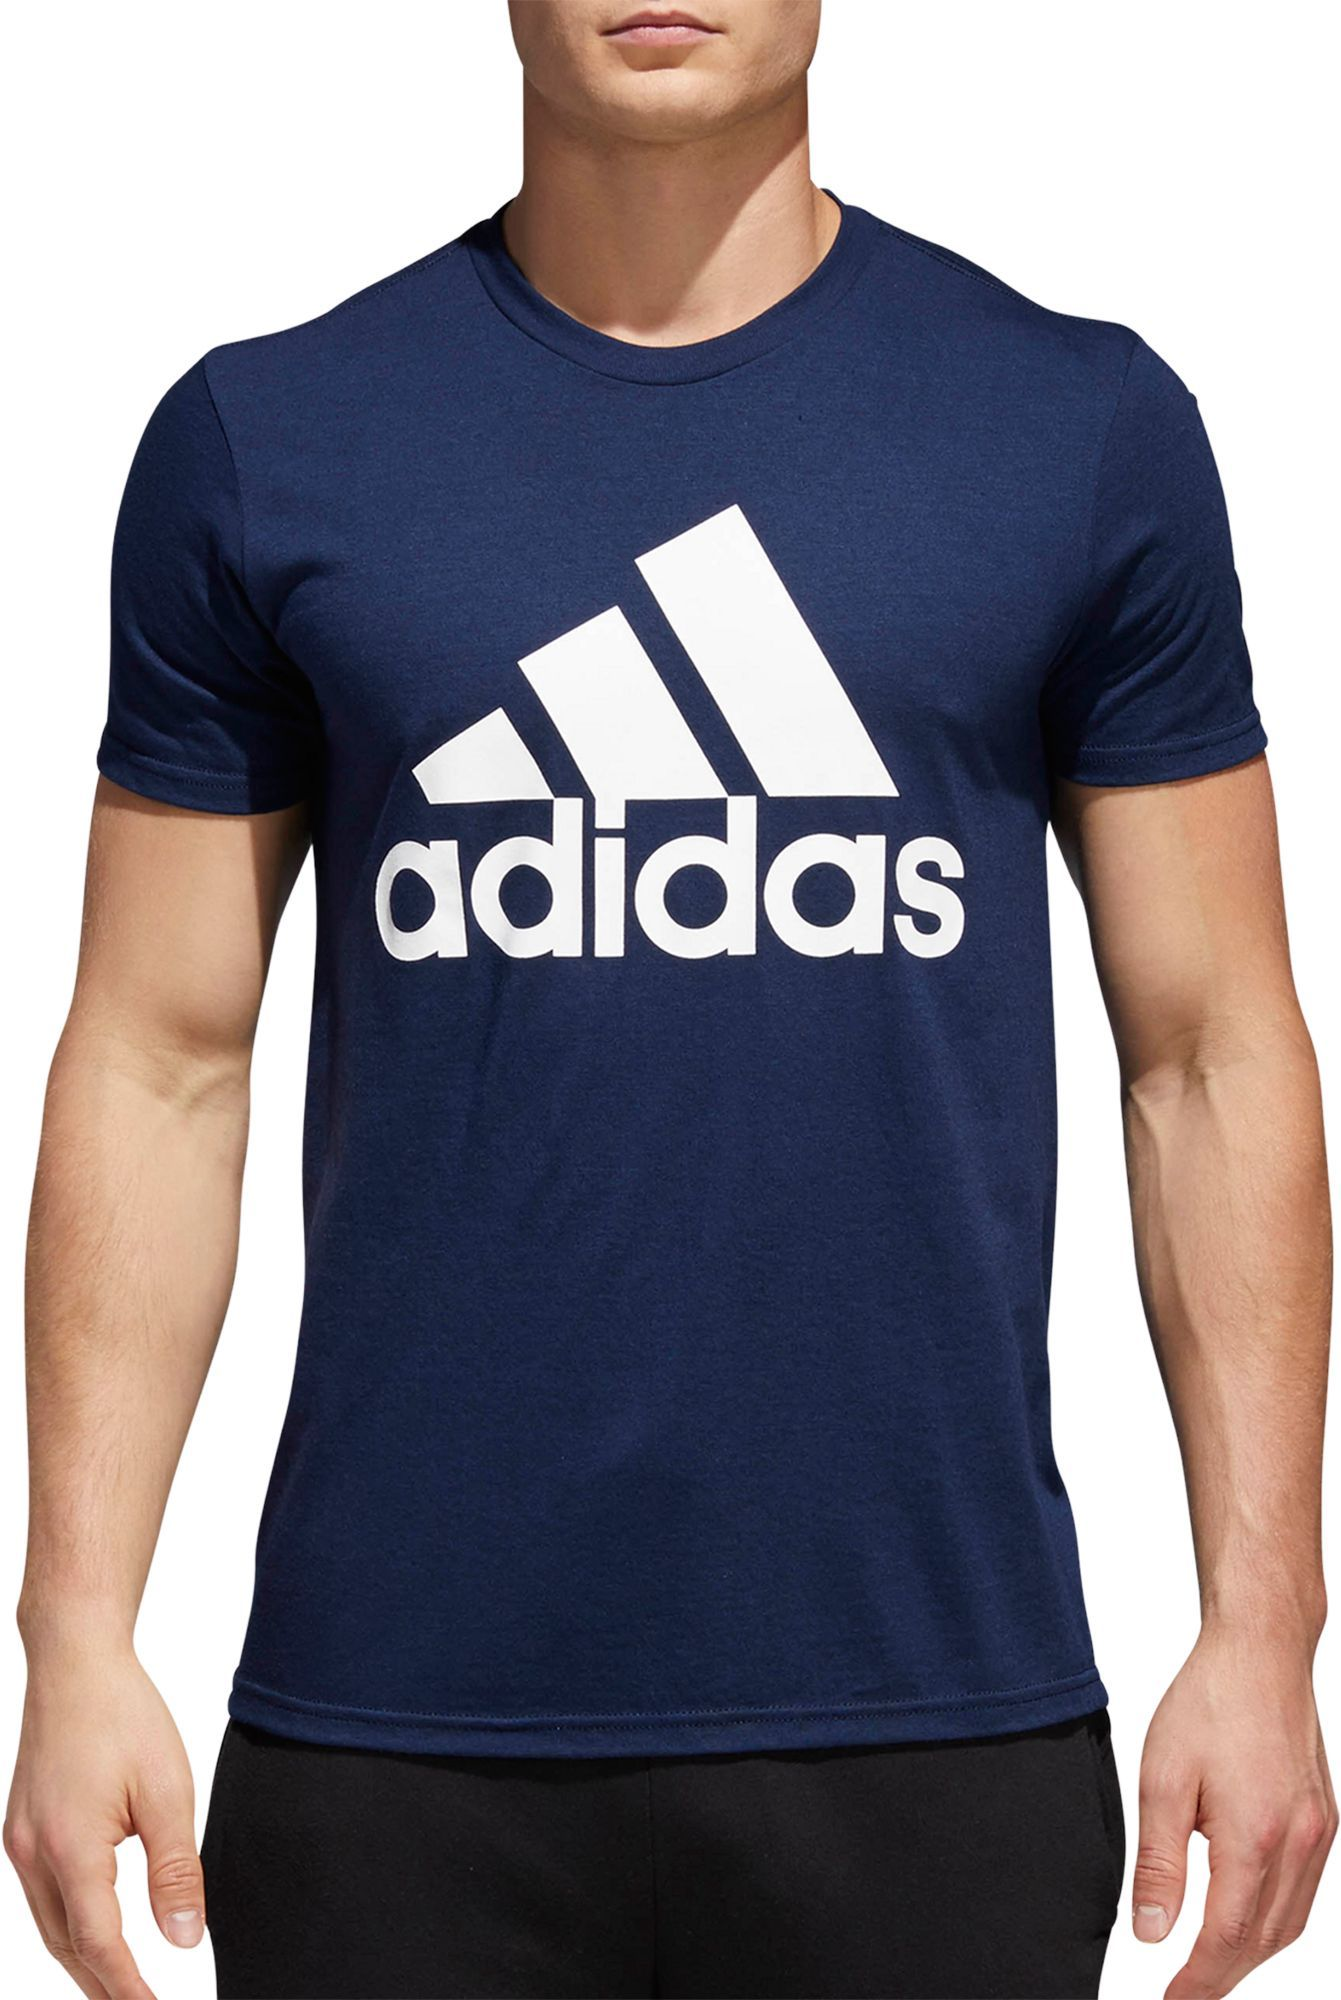 612b03b5c adidas Men's Badge Of Sport Classic T-Shirt, Size: Small, Black in ...